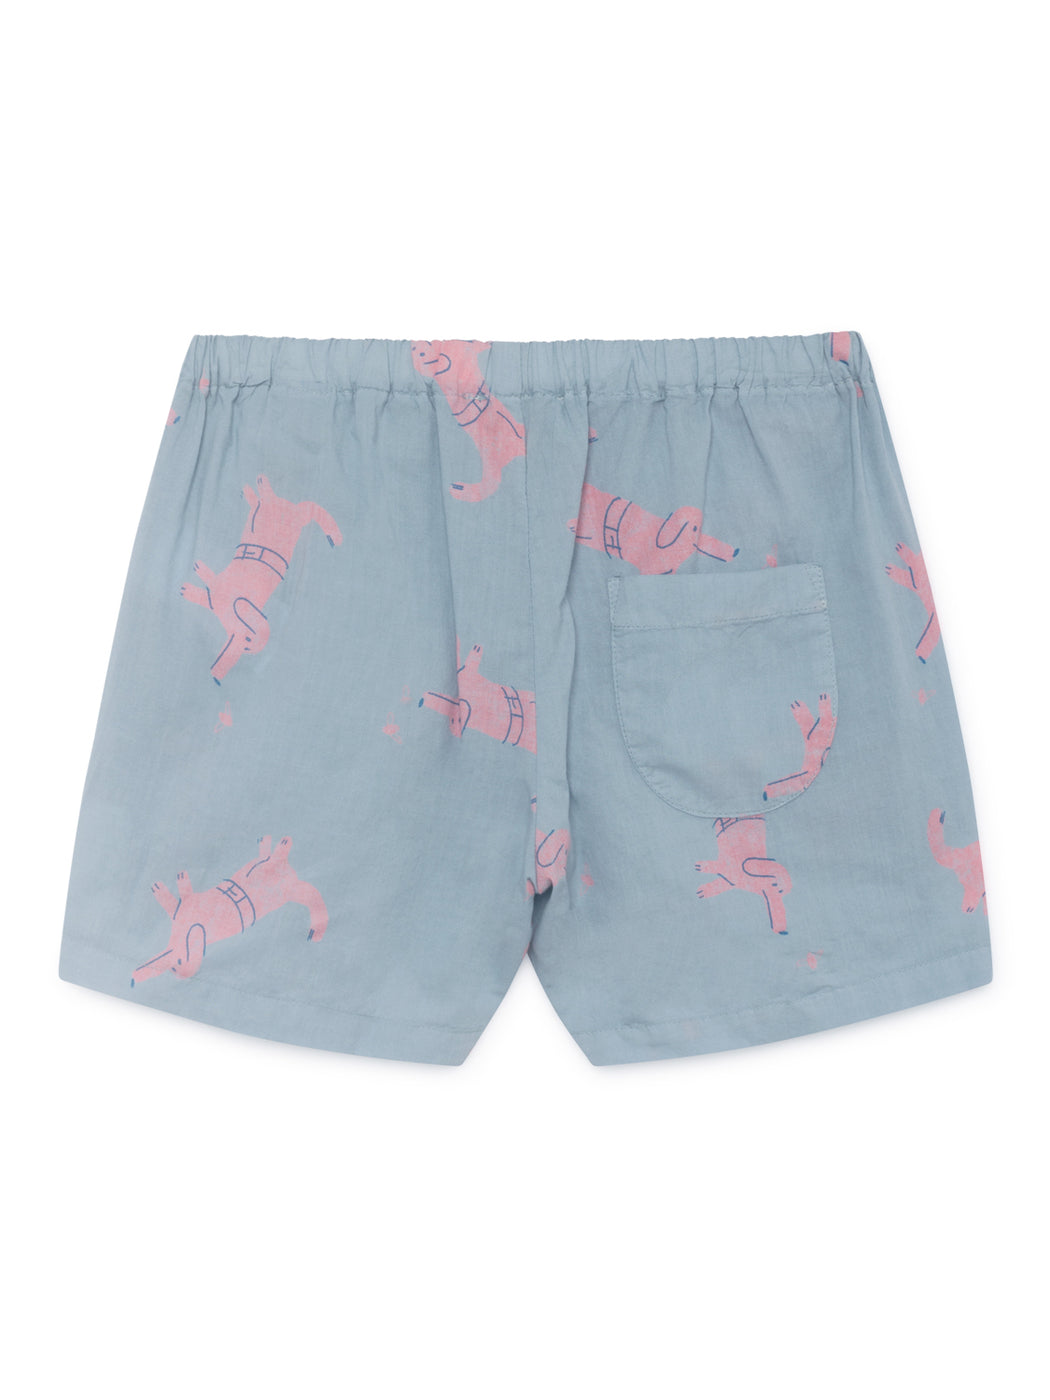 Bobo Choses - Dogs Shorts